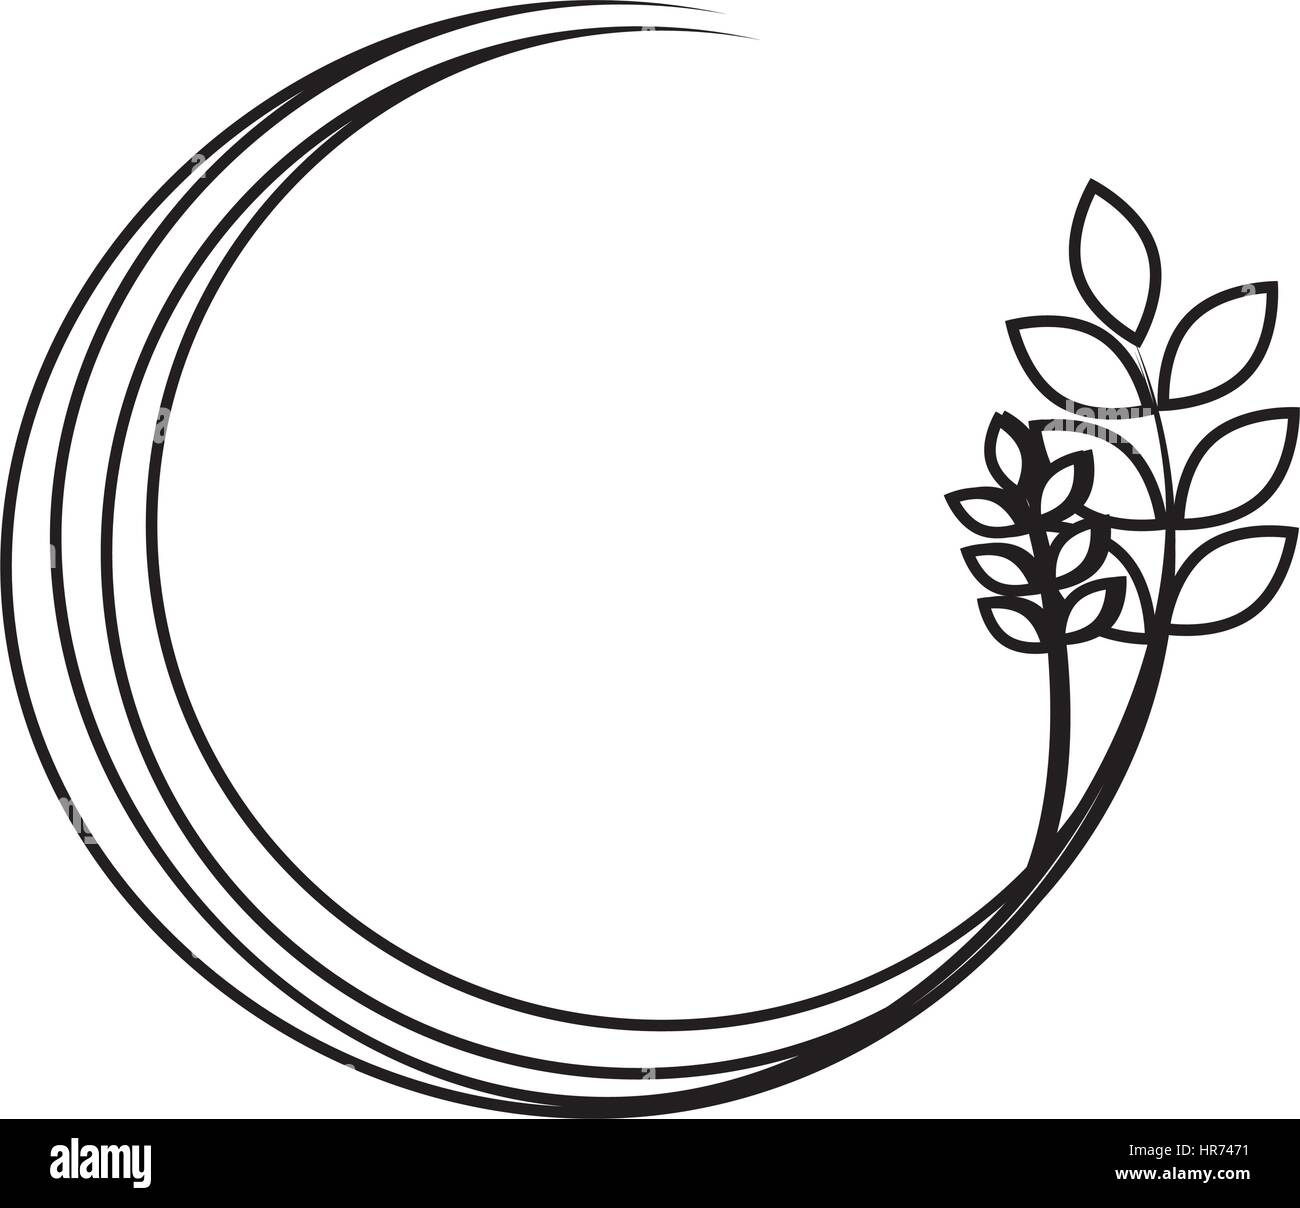 silhouette medium circular border with branch and leaves